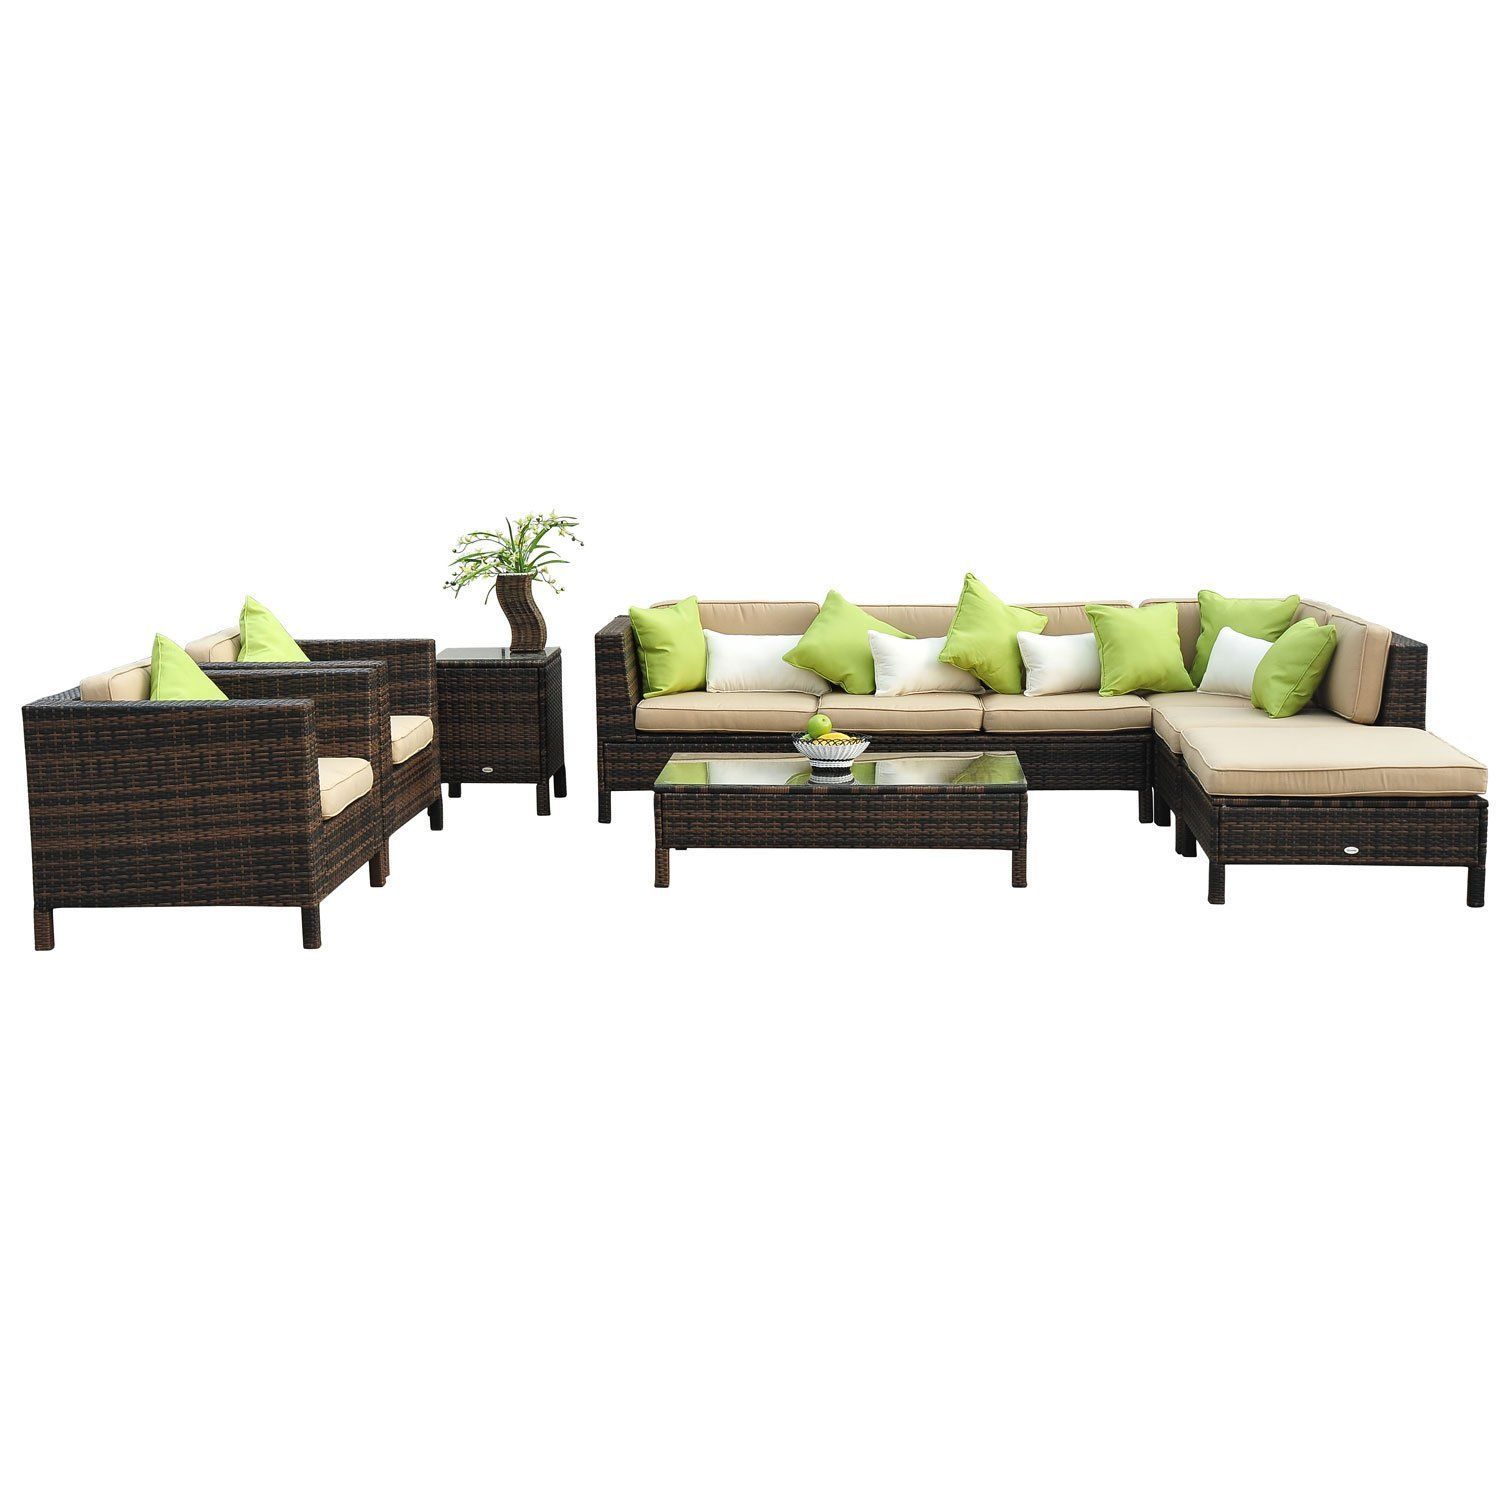 outsunny 37 tlg luxus polyrattan gartenm bel set lounge garnitur mit zwei. Black Bedroom Furniture Sets. Home Design Ideas